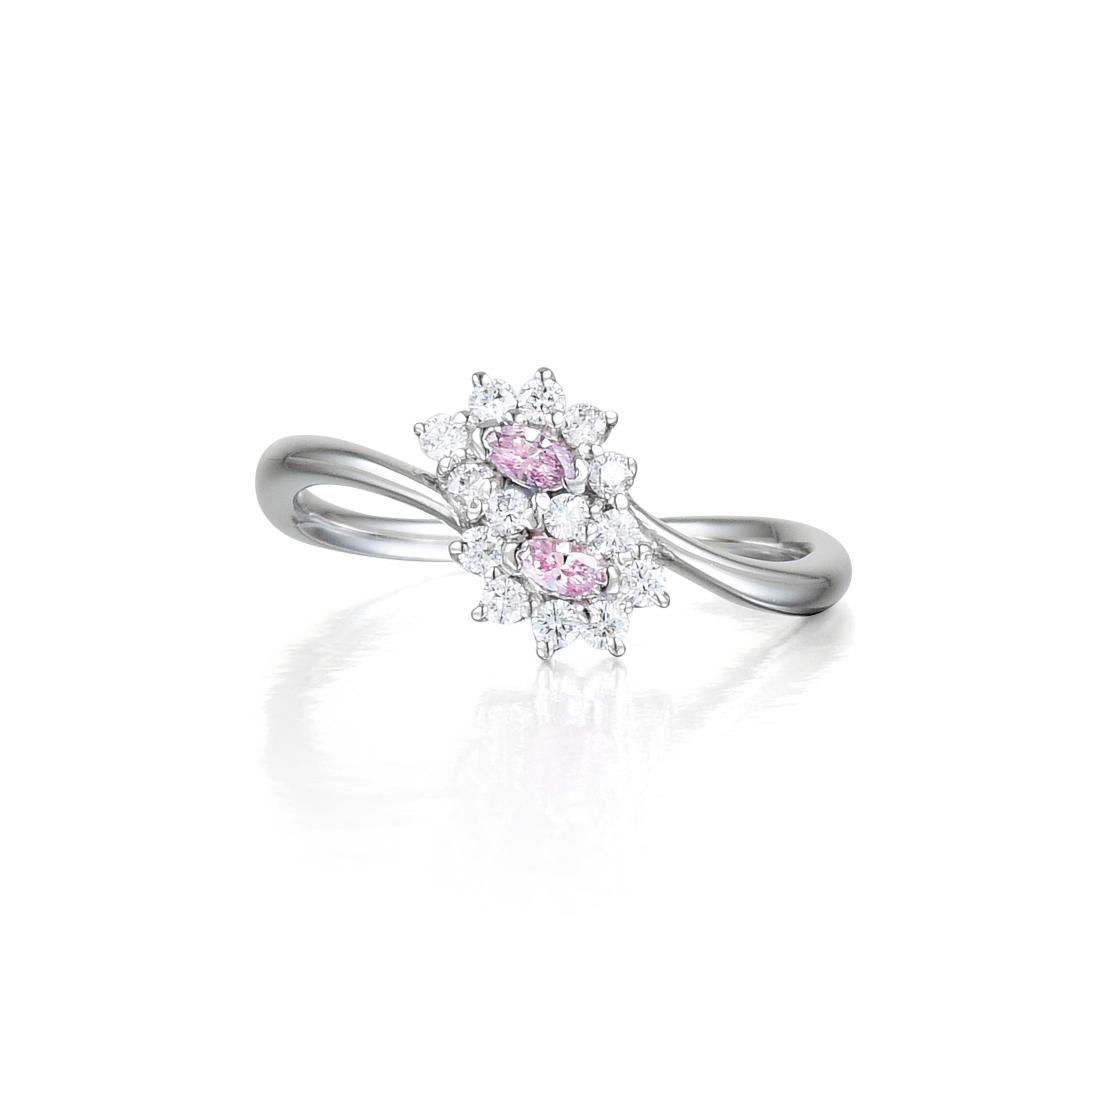 A Natural Pink Diamond Ring